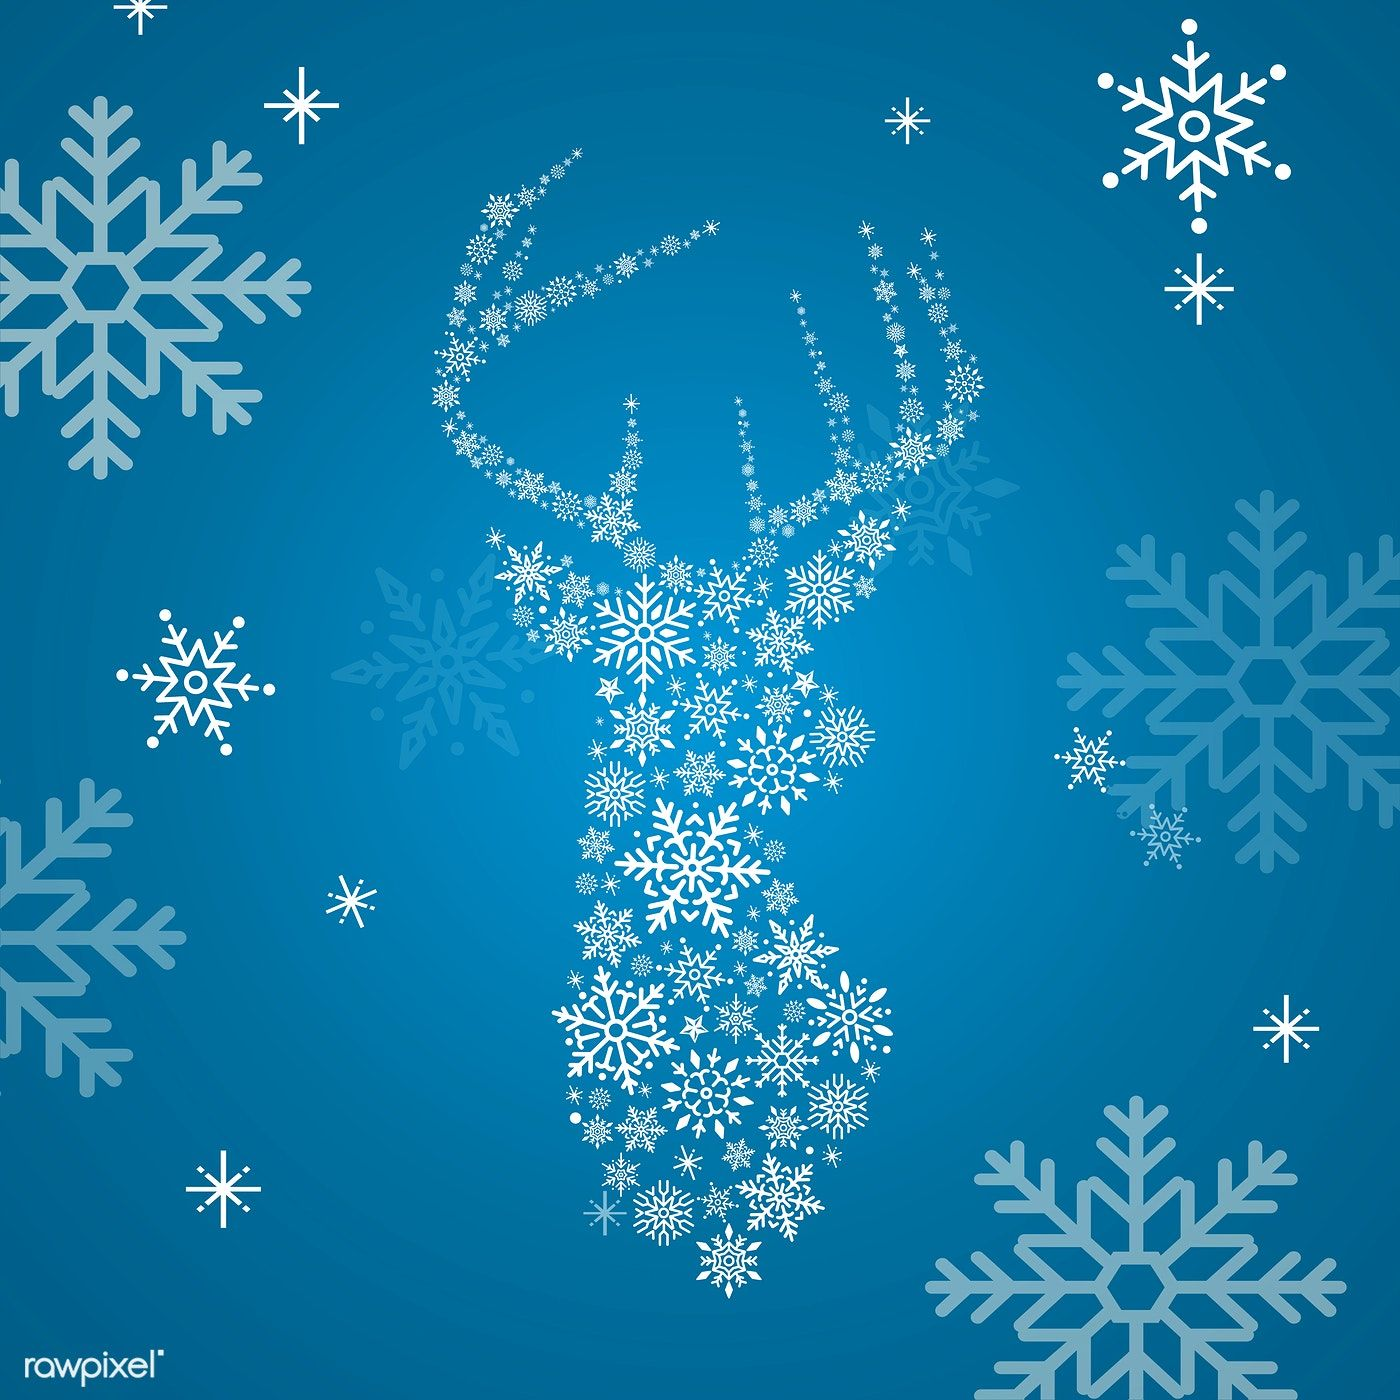 Blue Christmas Winter Holiday Background With Snowflake And Reindeer Vector Free Image By Rawpixel Com